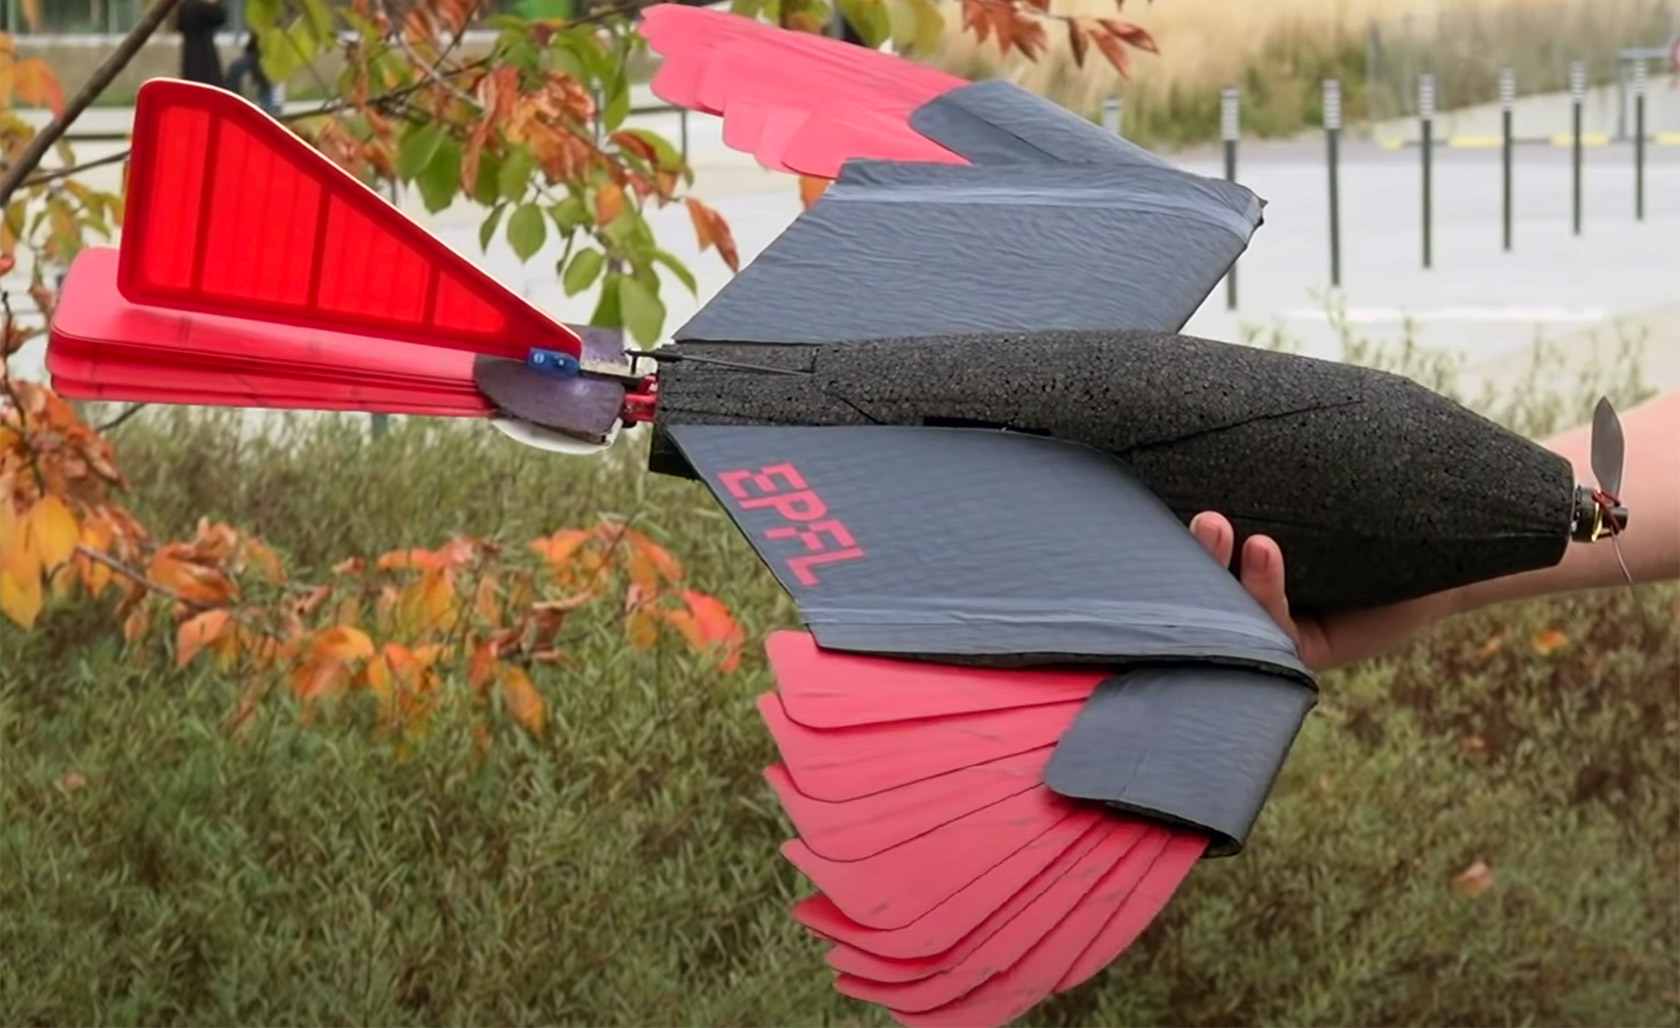 Raptor-Inspired Drone Morphing Wings Tail